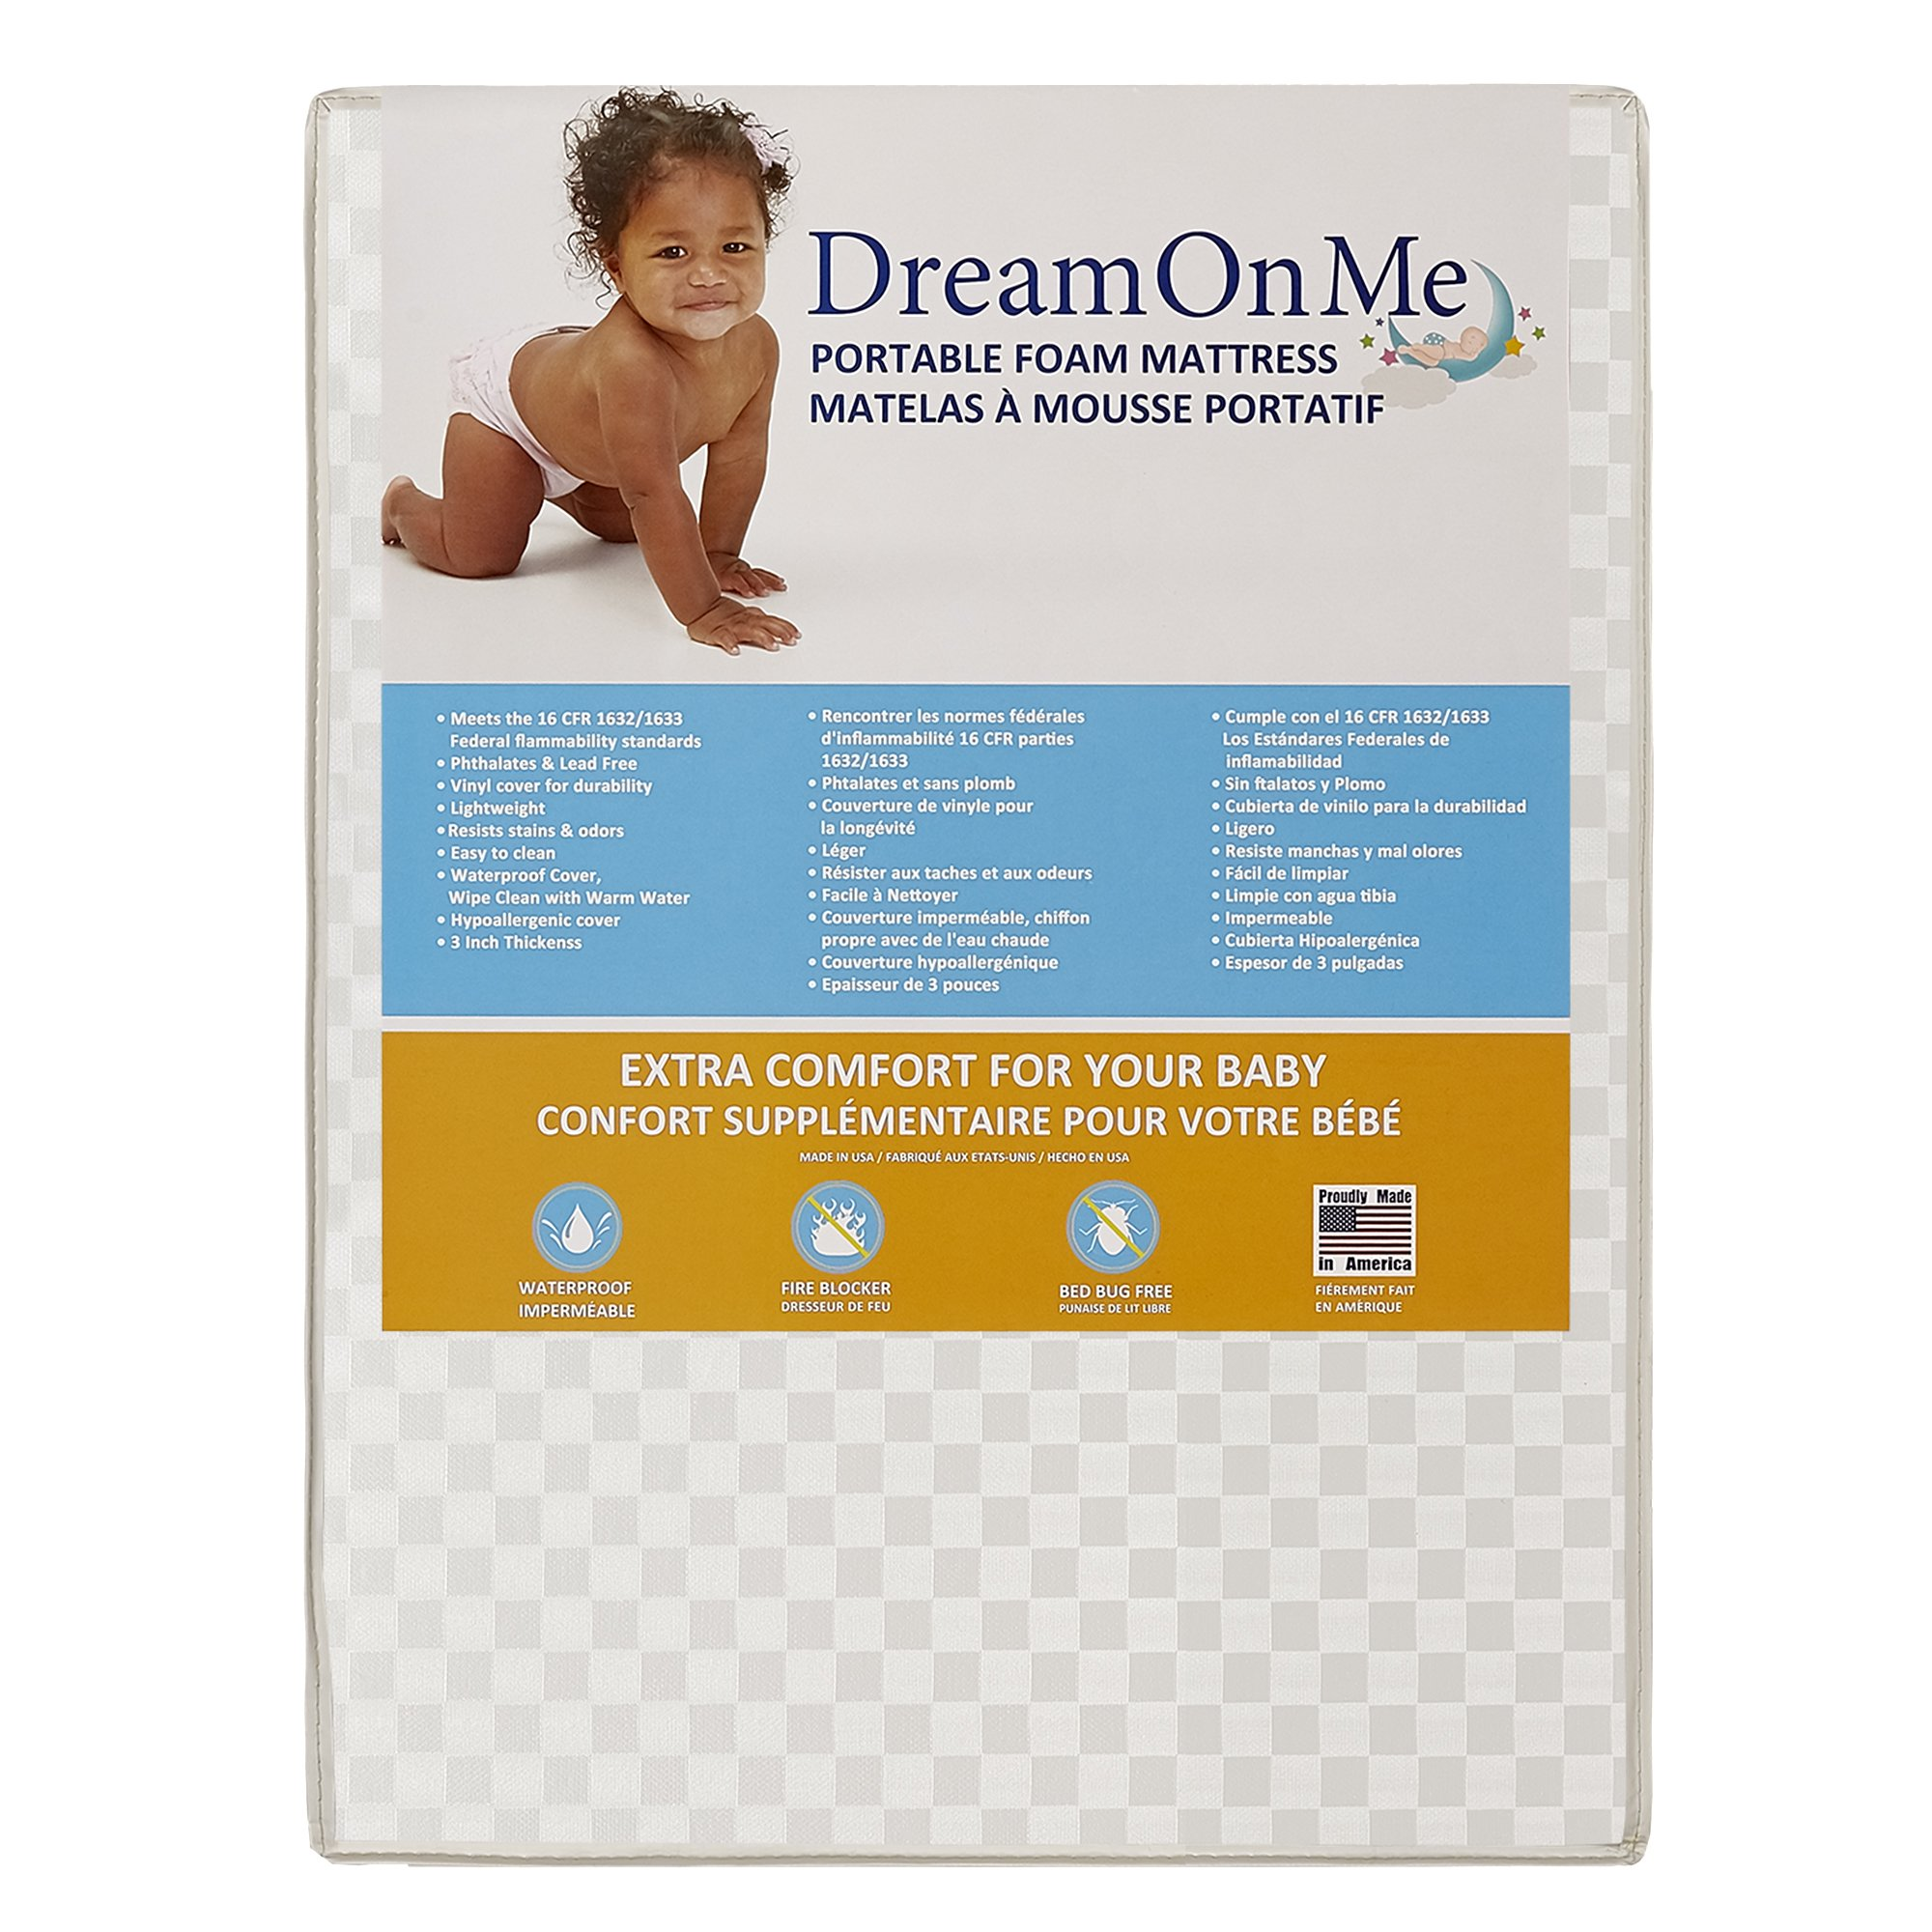 Dream On Me Travel Lite, Mini Foam Playard Mattress with Round Corner by Dream On Me